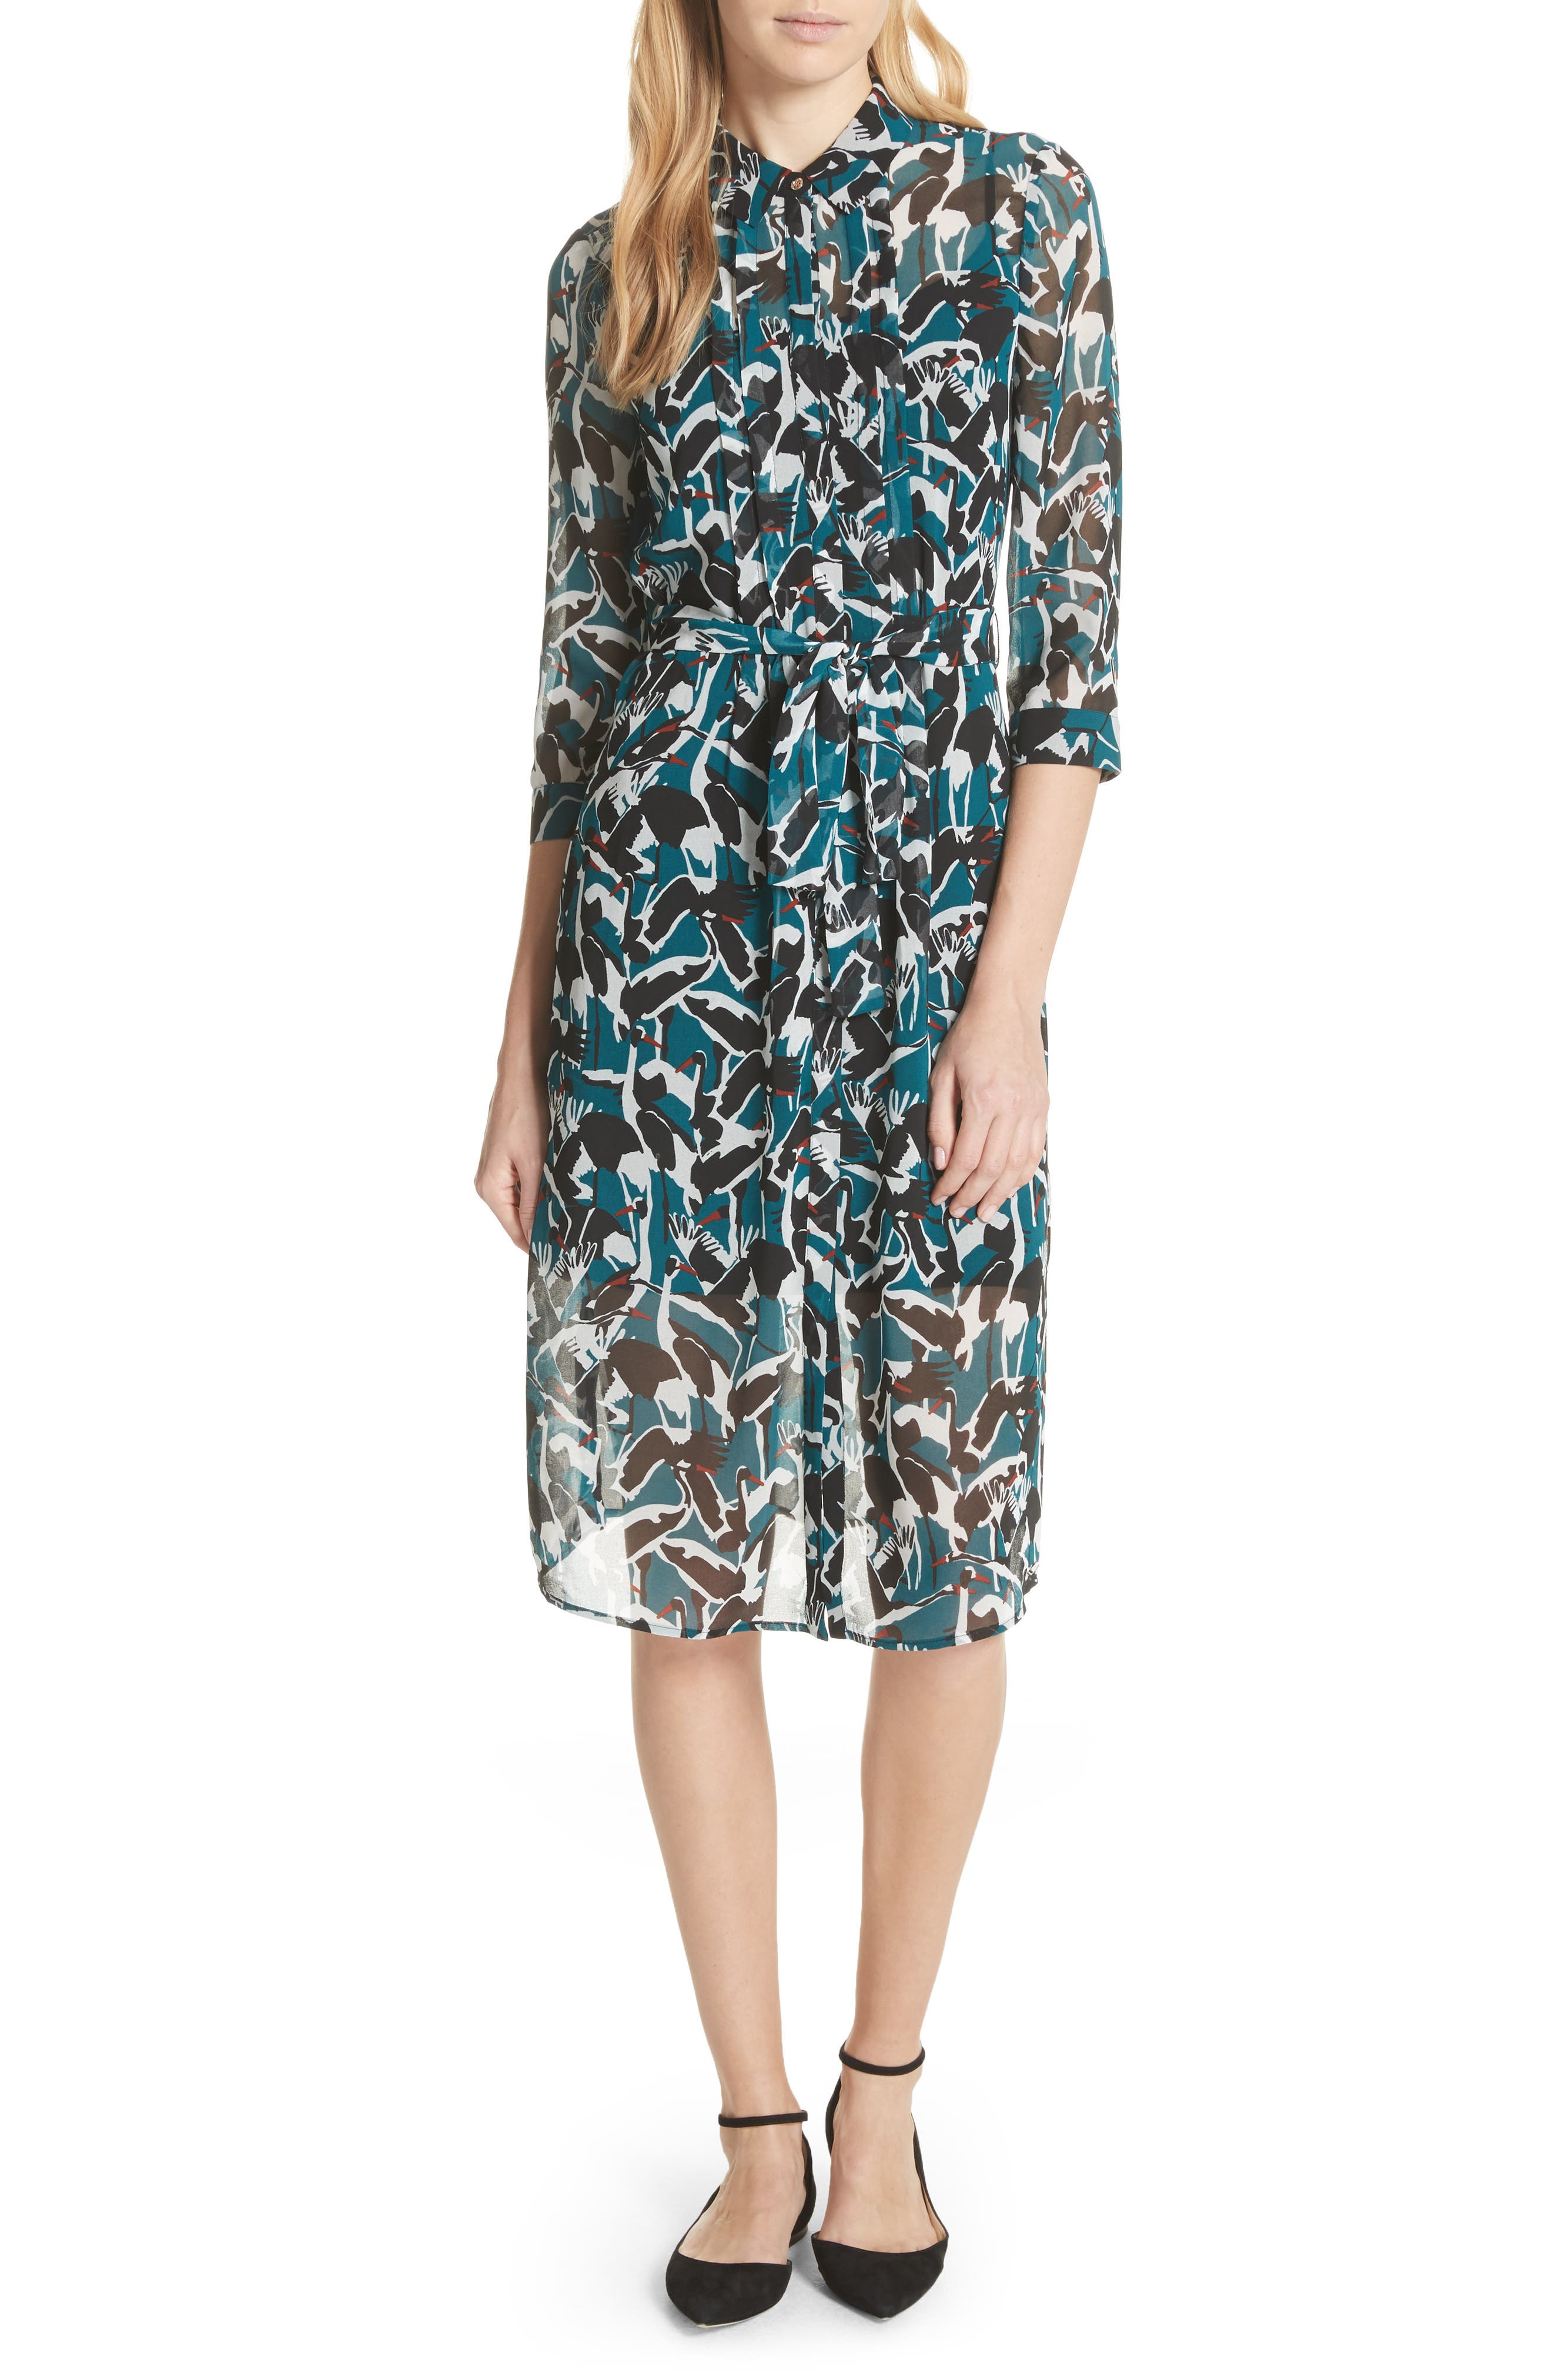 Colour by Numbers Crane Shirtdress,                         Main,                         color, Teal